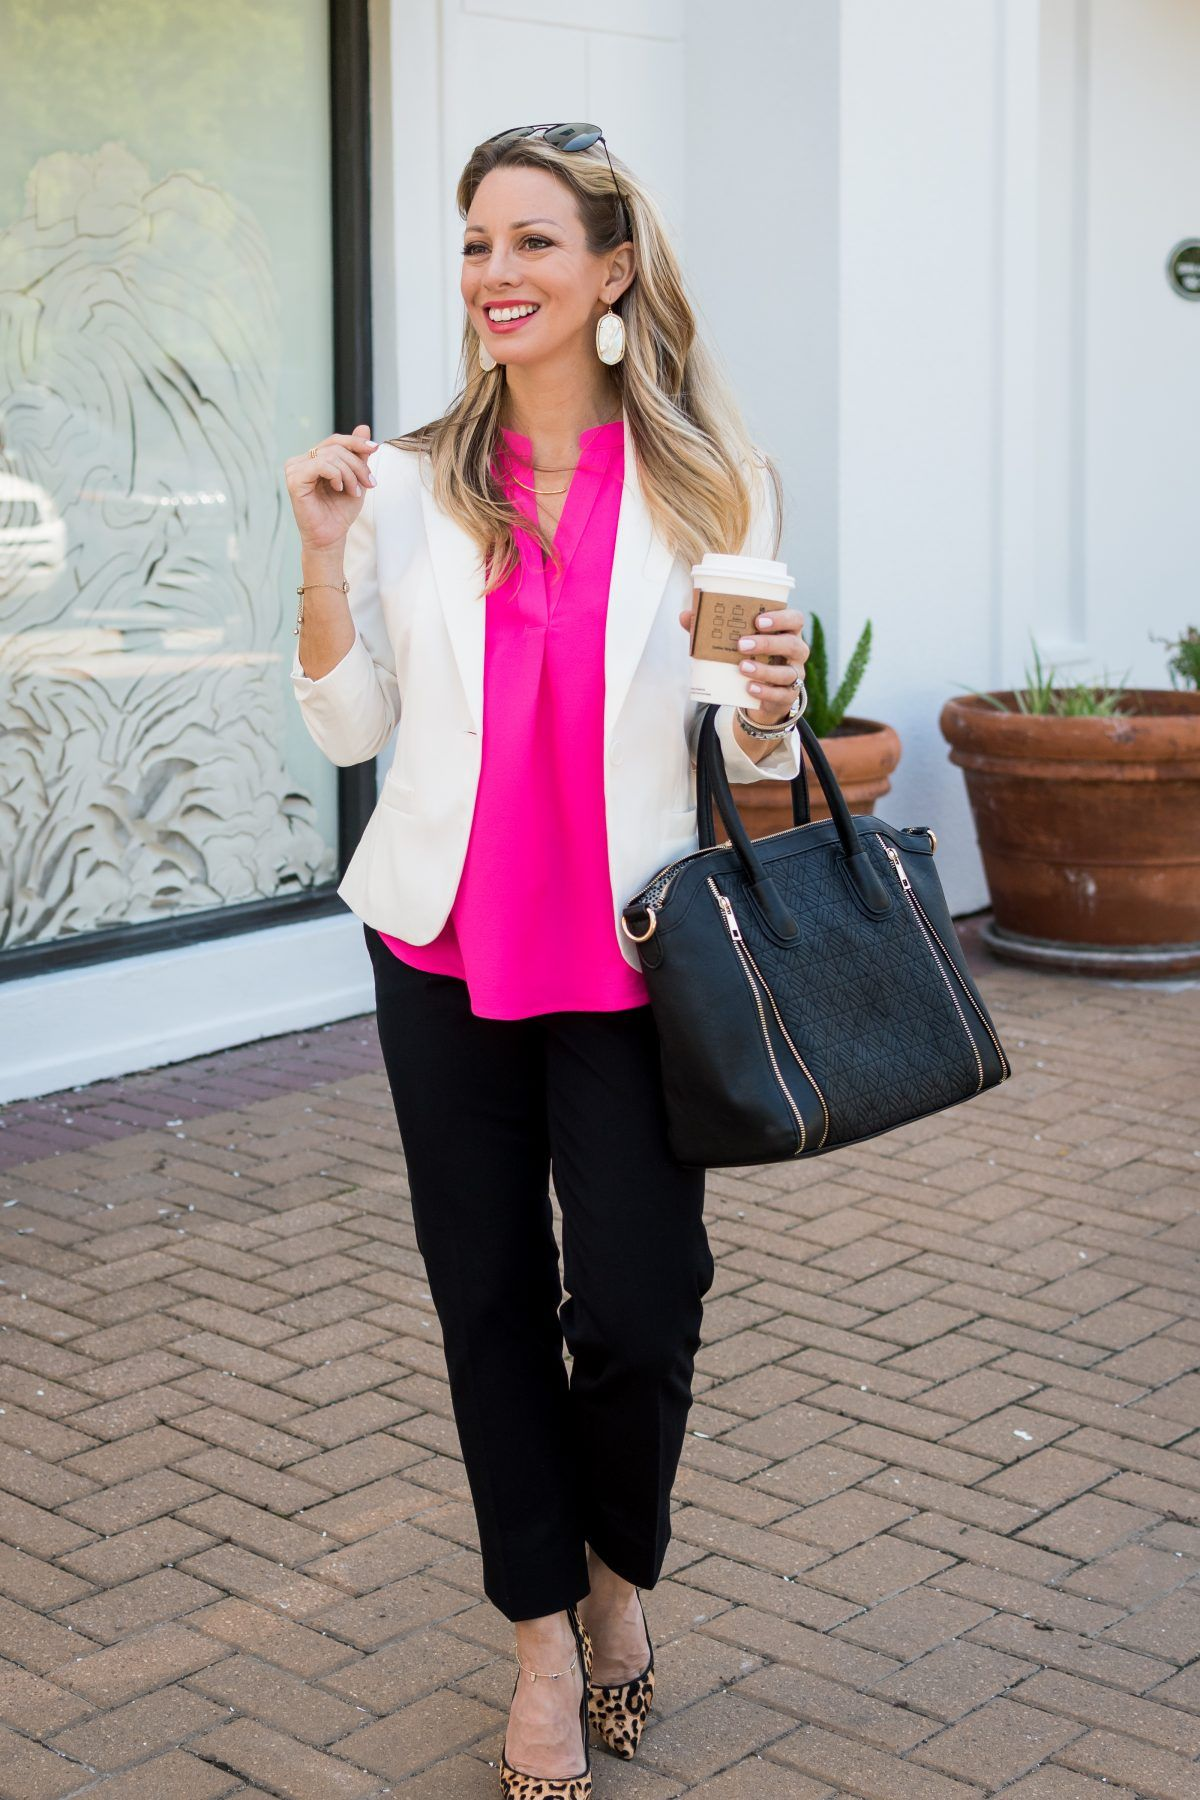 4fec70f3b21ff Spring is the perfect time to show off your white blazer, and today I'm  showing you how to style your white blazer for work! I found the cutest white  blazer ...